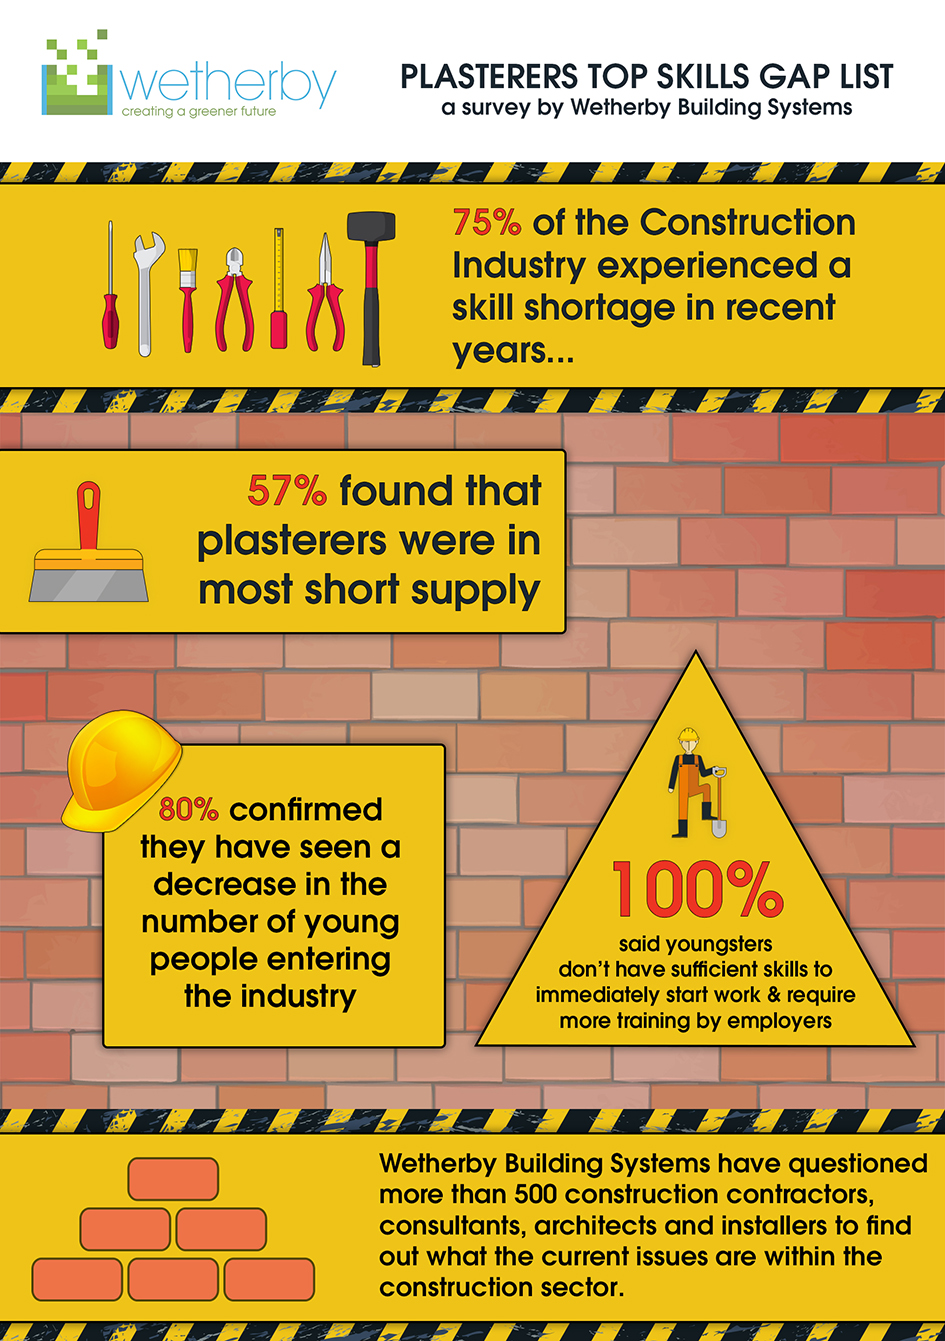 plasterers top skills gap list the bleak situation is worsened by the fact that those young people that are coming into the industry are not in a position to go straight onto site